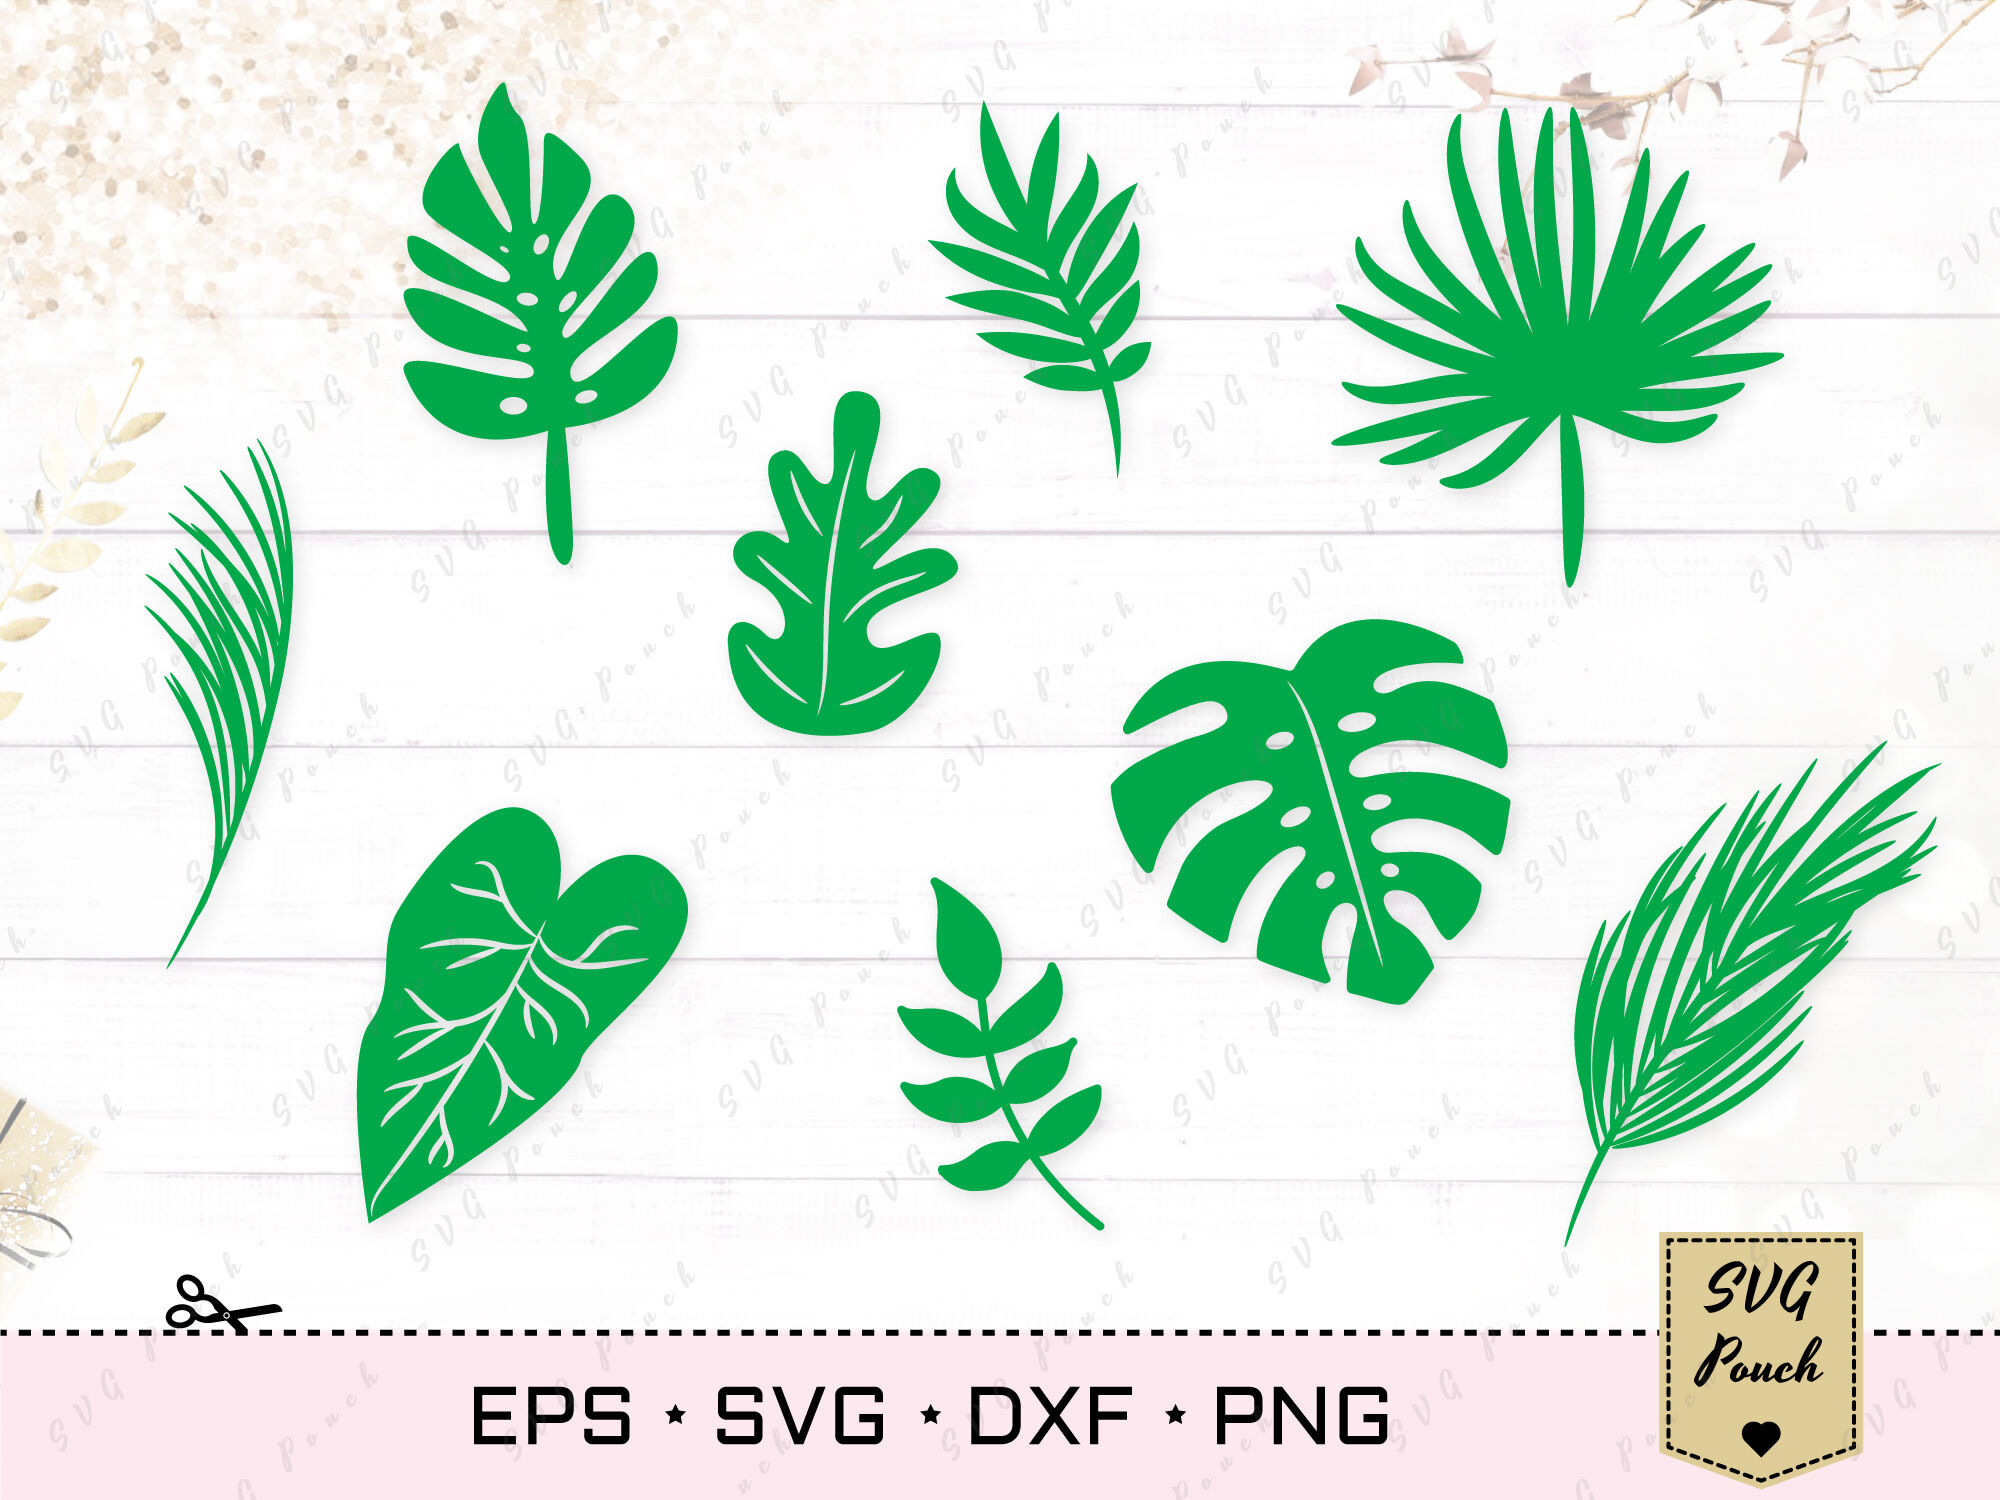 Tropical Leaves Svg By Svgpouch Thehungryjpeg Com Check out our tropical leaf svg selection for the very best in unique or custom, handmade pieces from our craft supplies & tools shops. tropical leaves svg by svgpouch